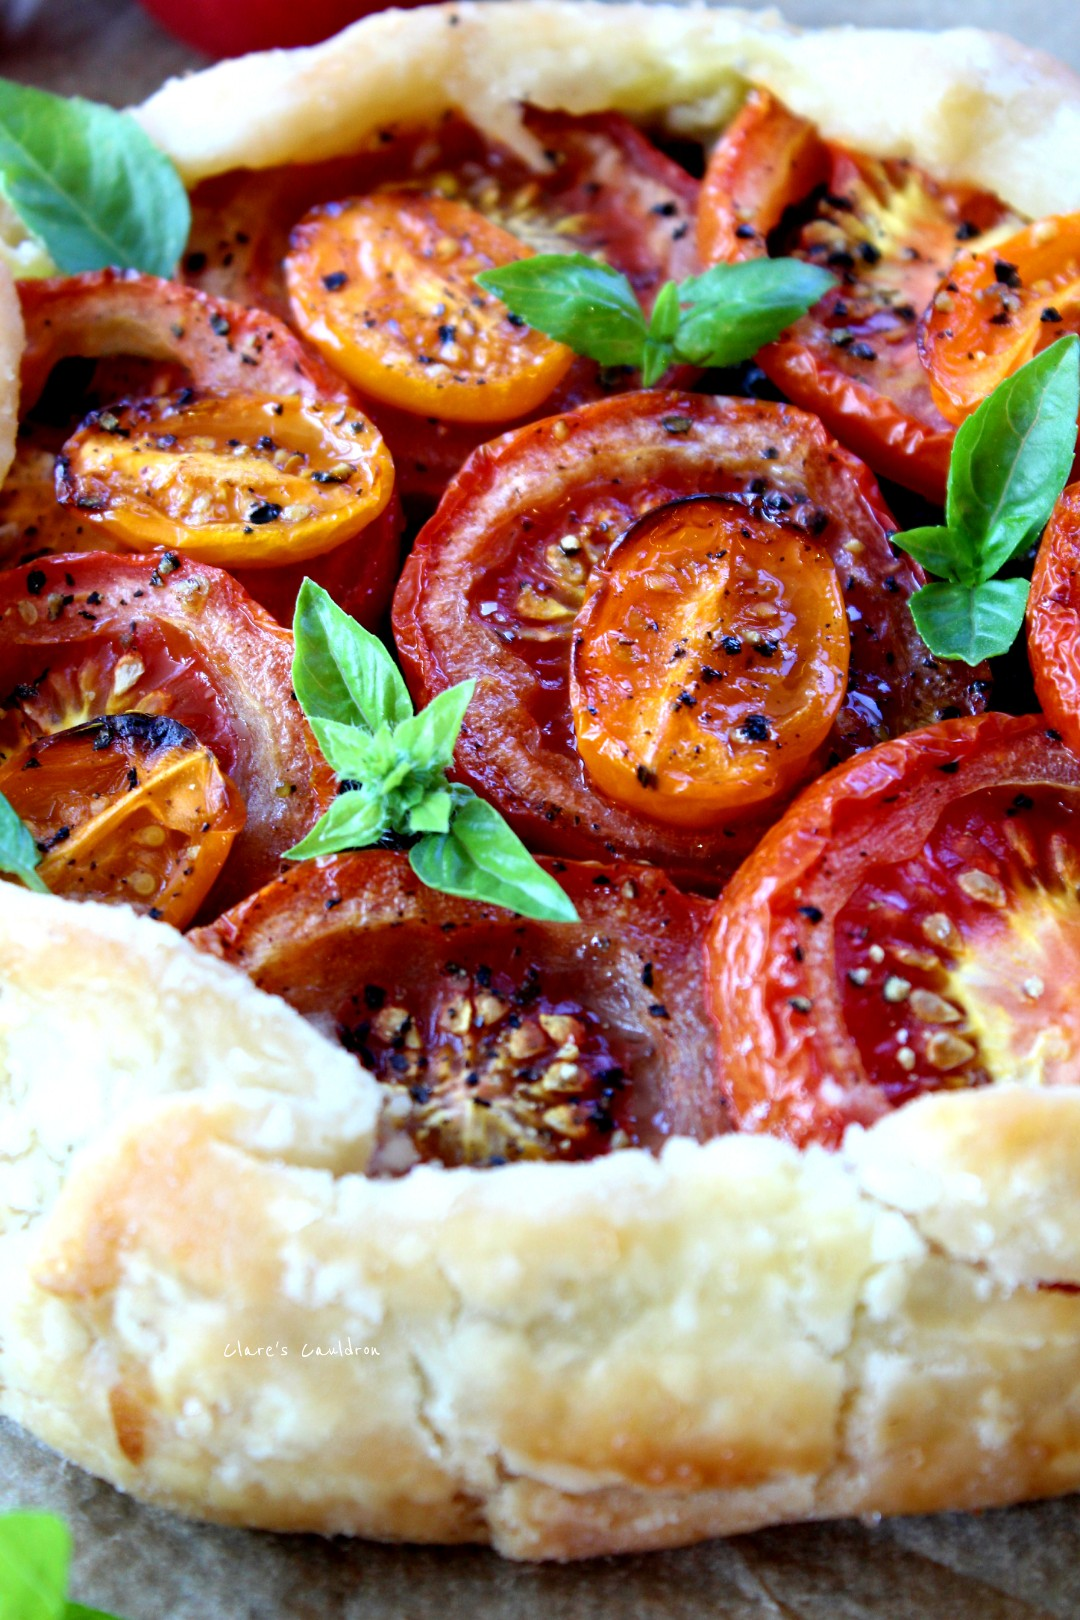 Lets Make Some Pastry……….. Well A Tomato And PestoGalette